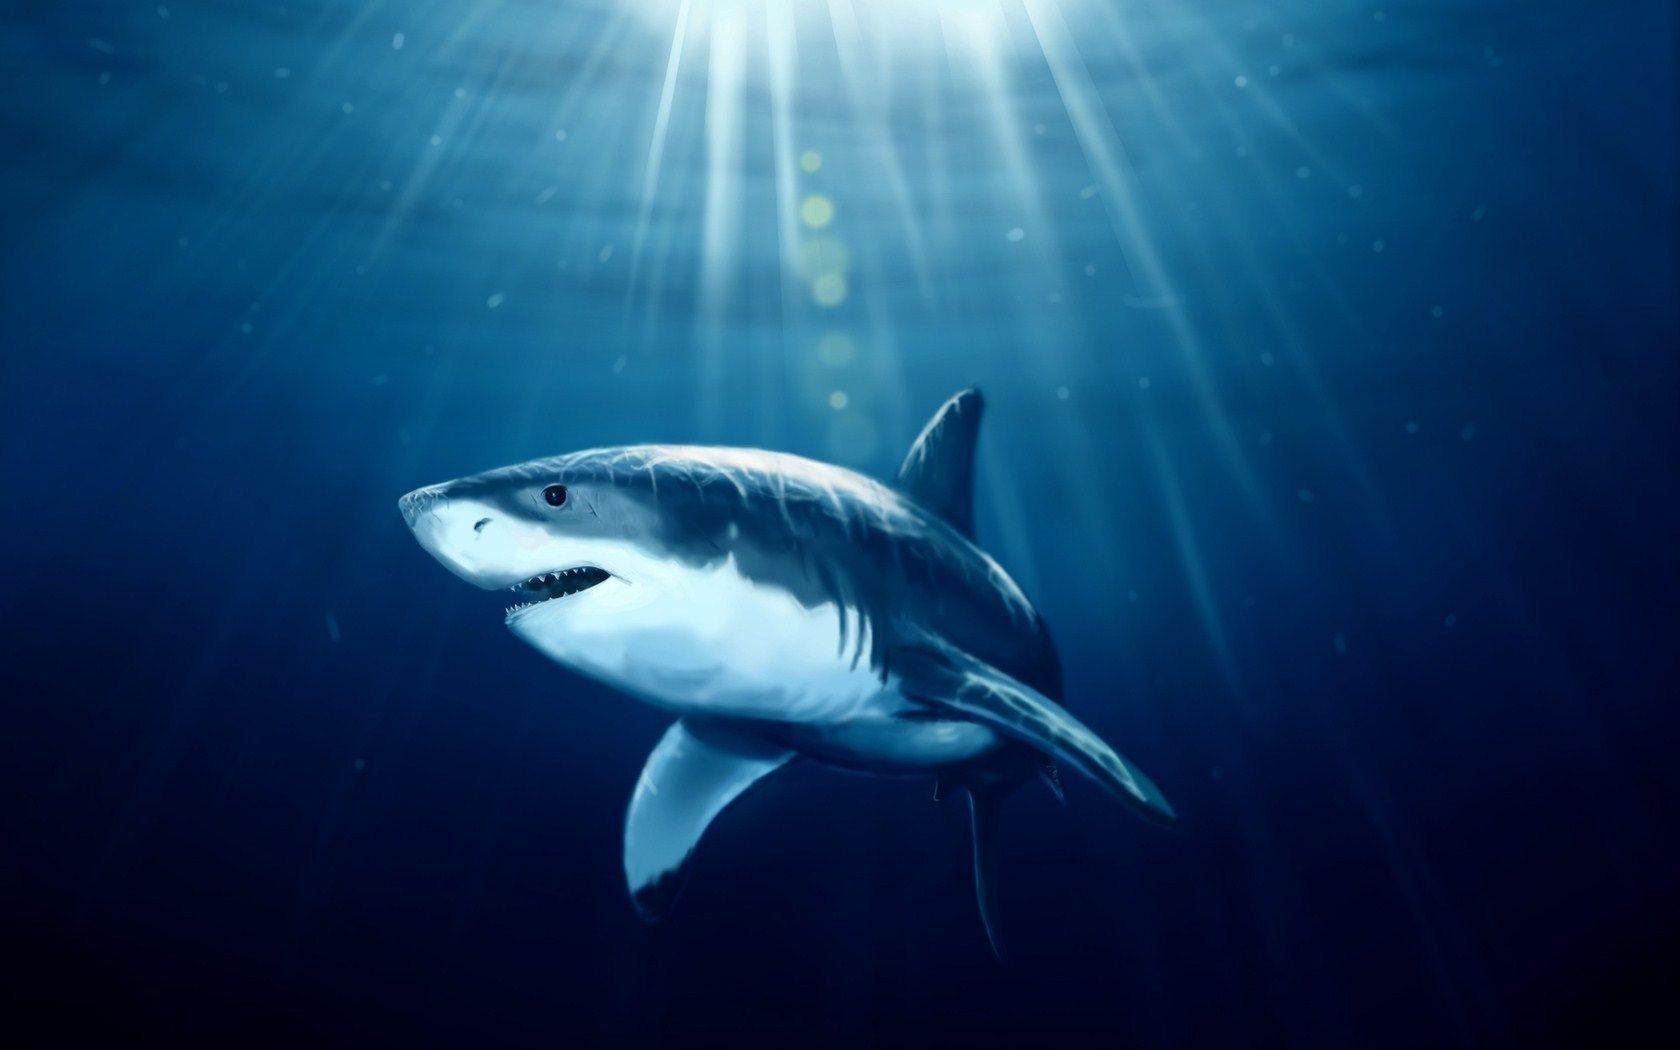 Shark Fish Underwater Art HD Wallpaper - ZoomWalls